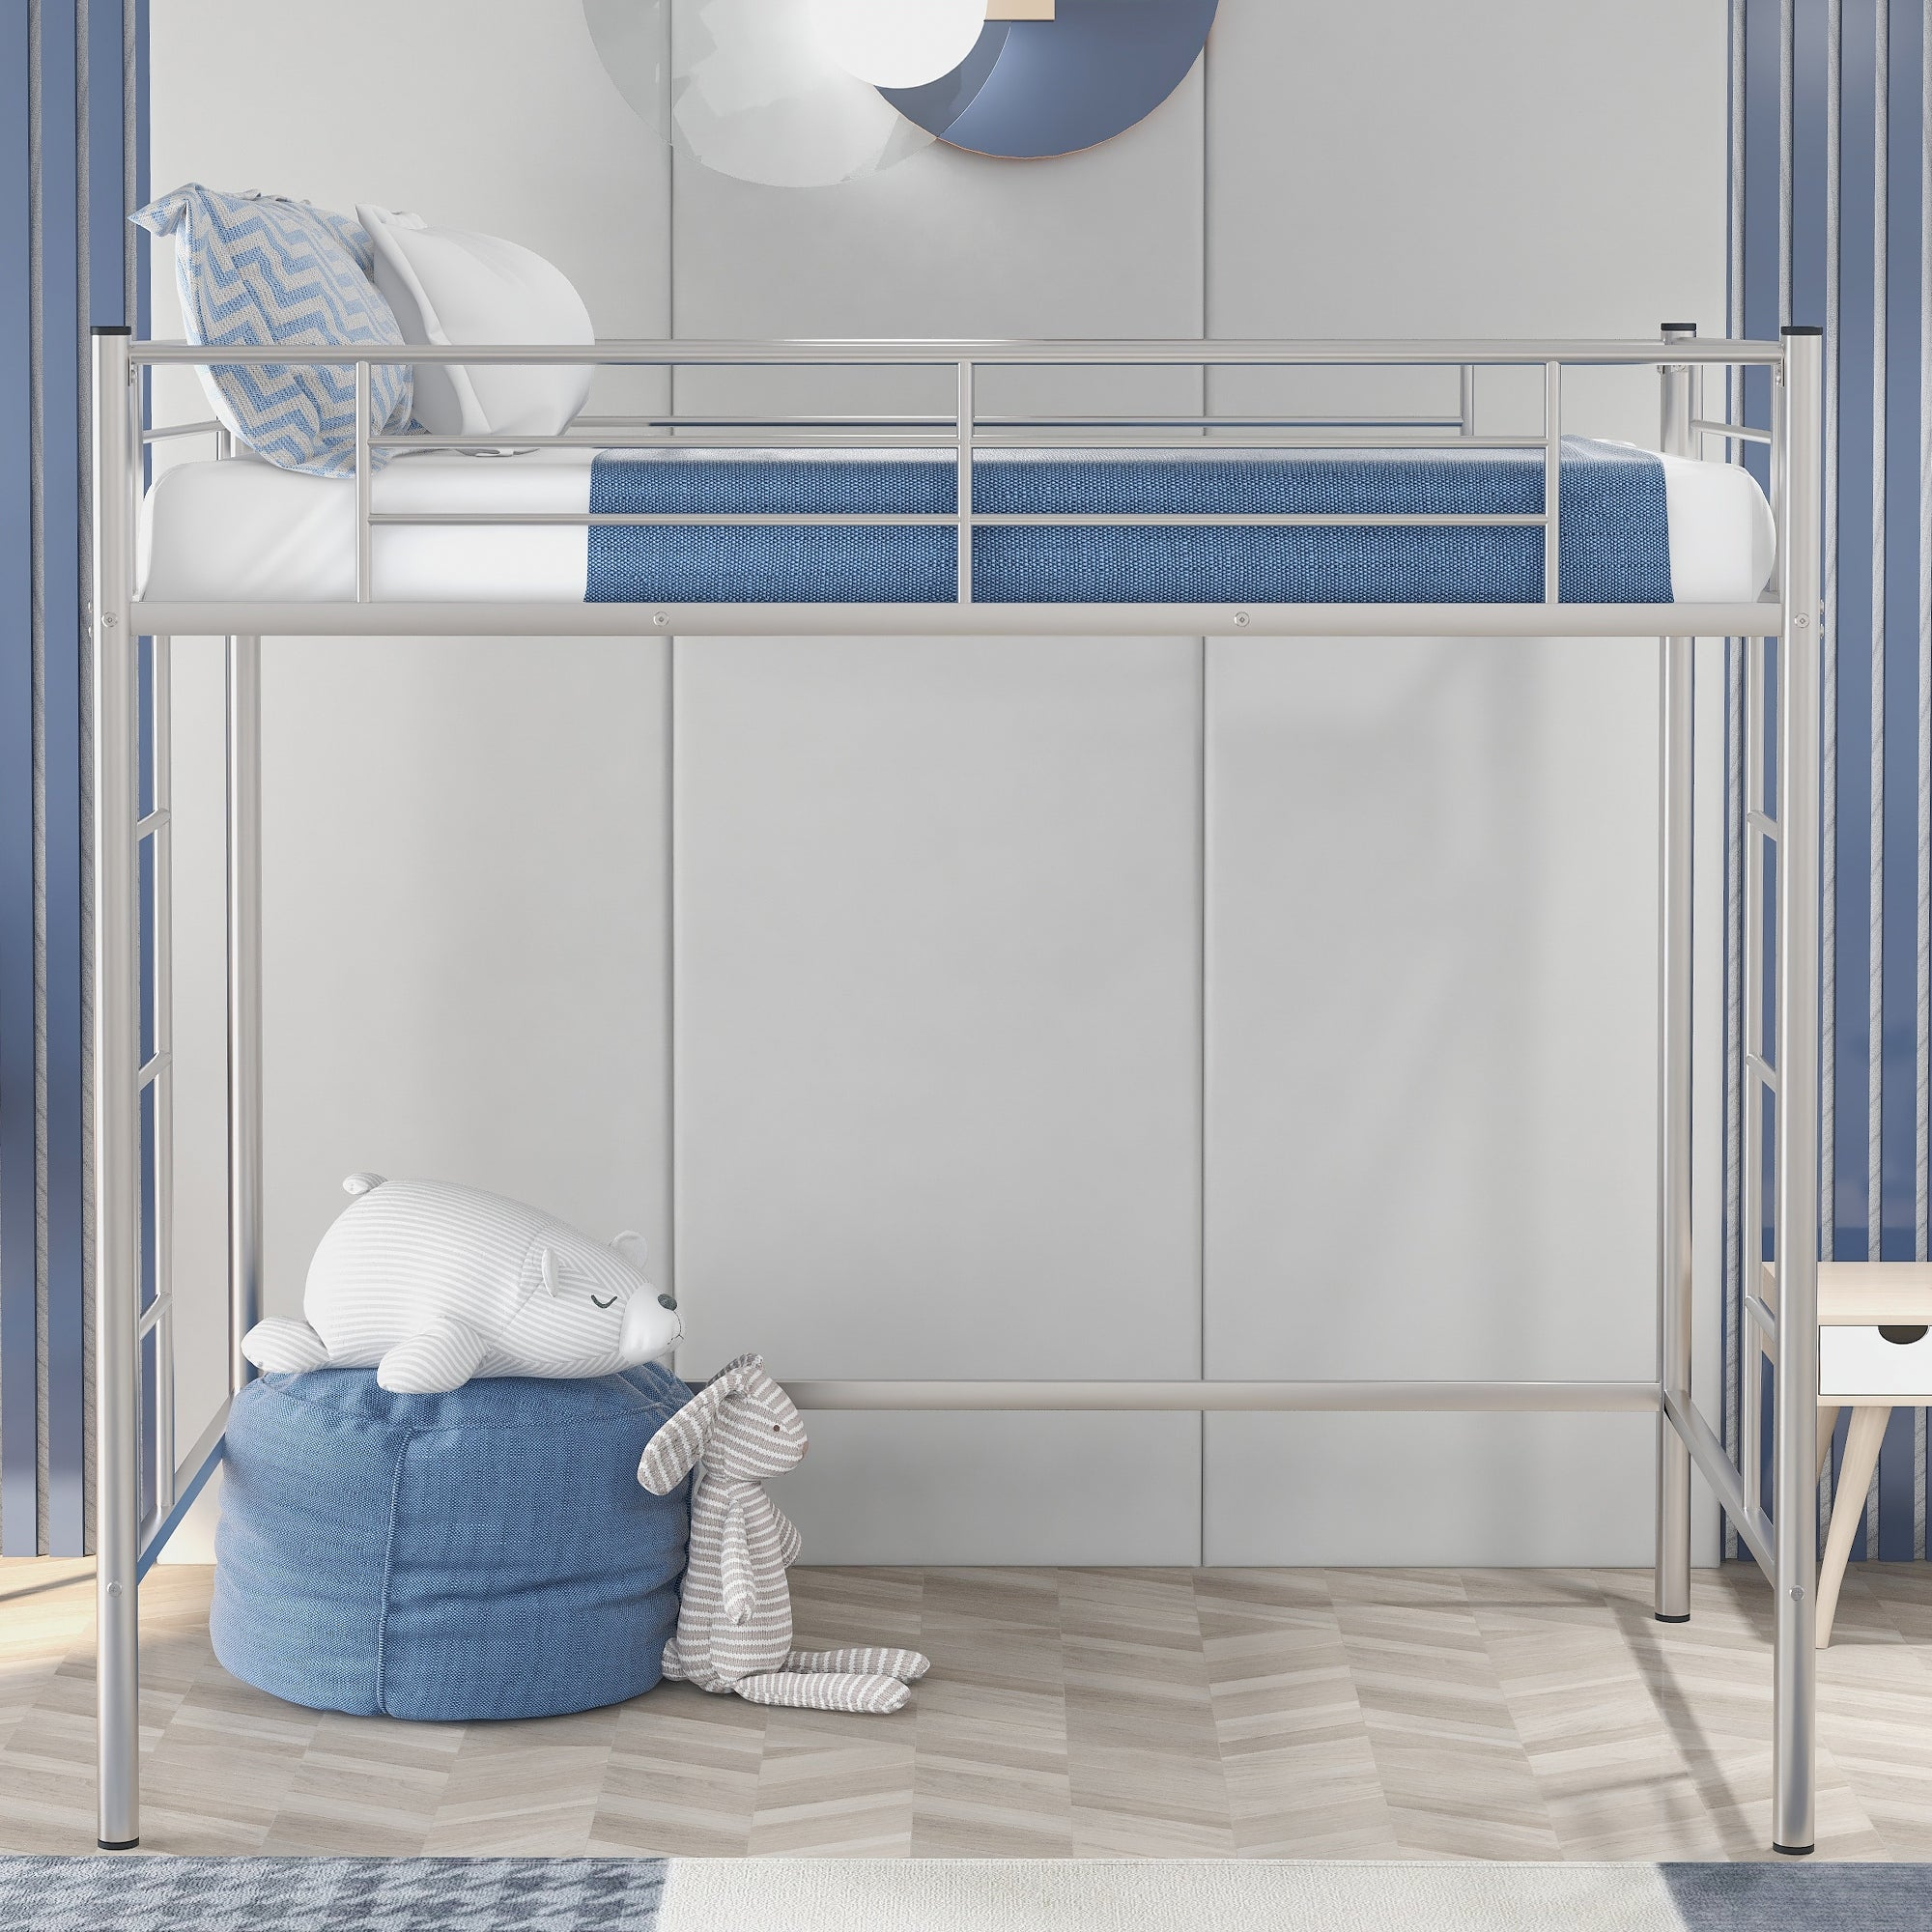 Image of: Shop Twin Loft Bed With Sturdy Steel Frame And Two Side Ladders On Sale Overstock 31990008 Silver